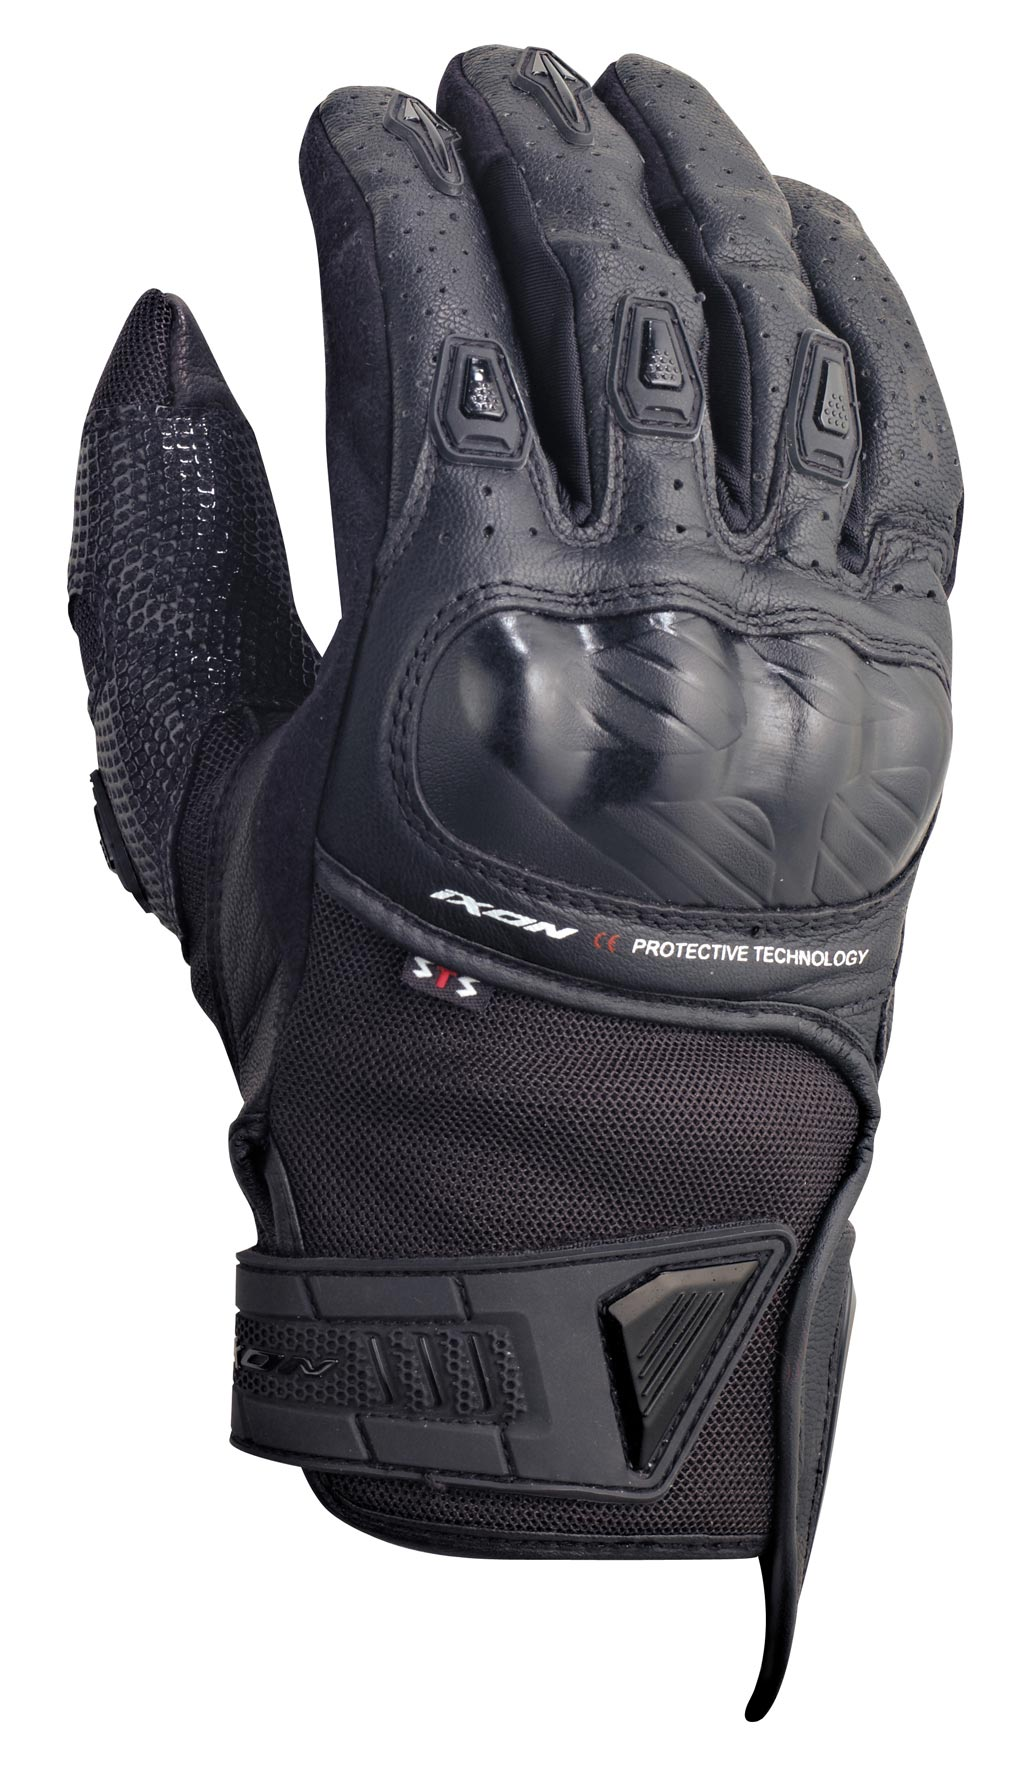 Ixon RS Burn Hp Gloves - These gloves don't sacrifice comfort for safety either, with the added knuckle protectors on the backhand of the glove giving extra protection